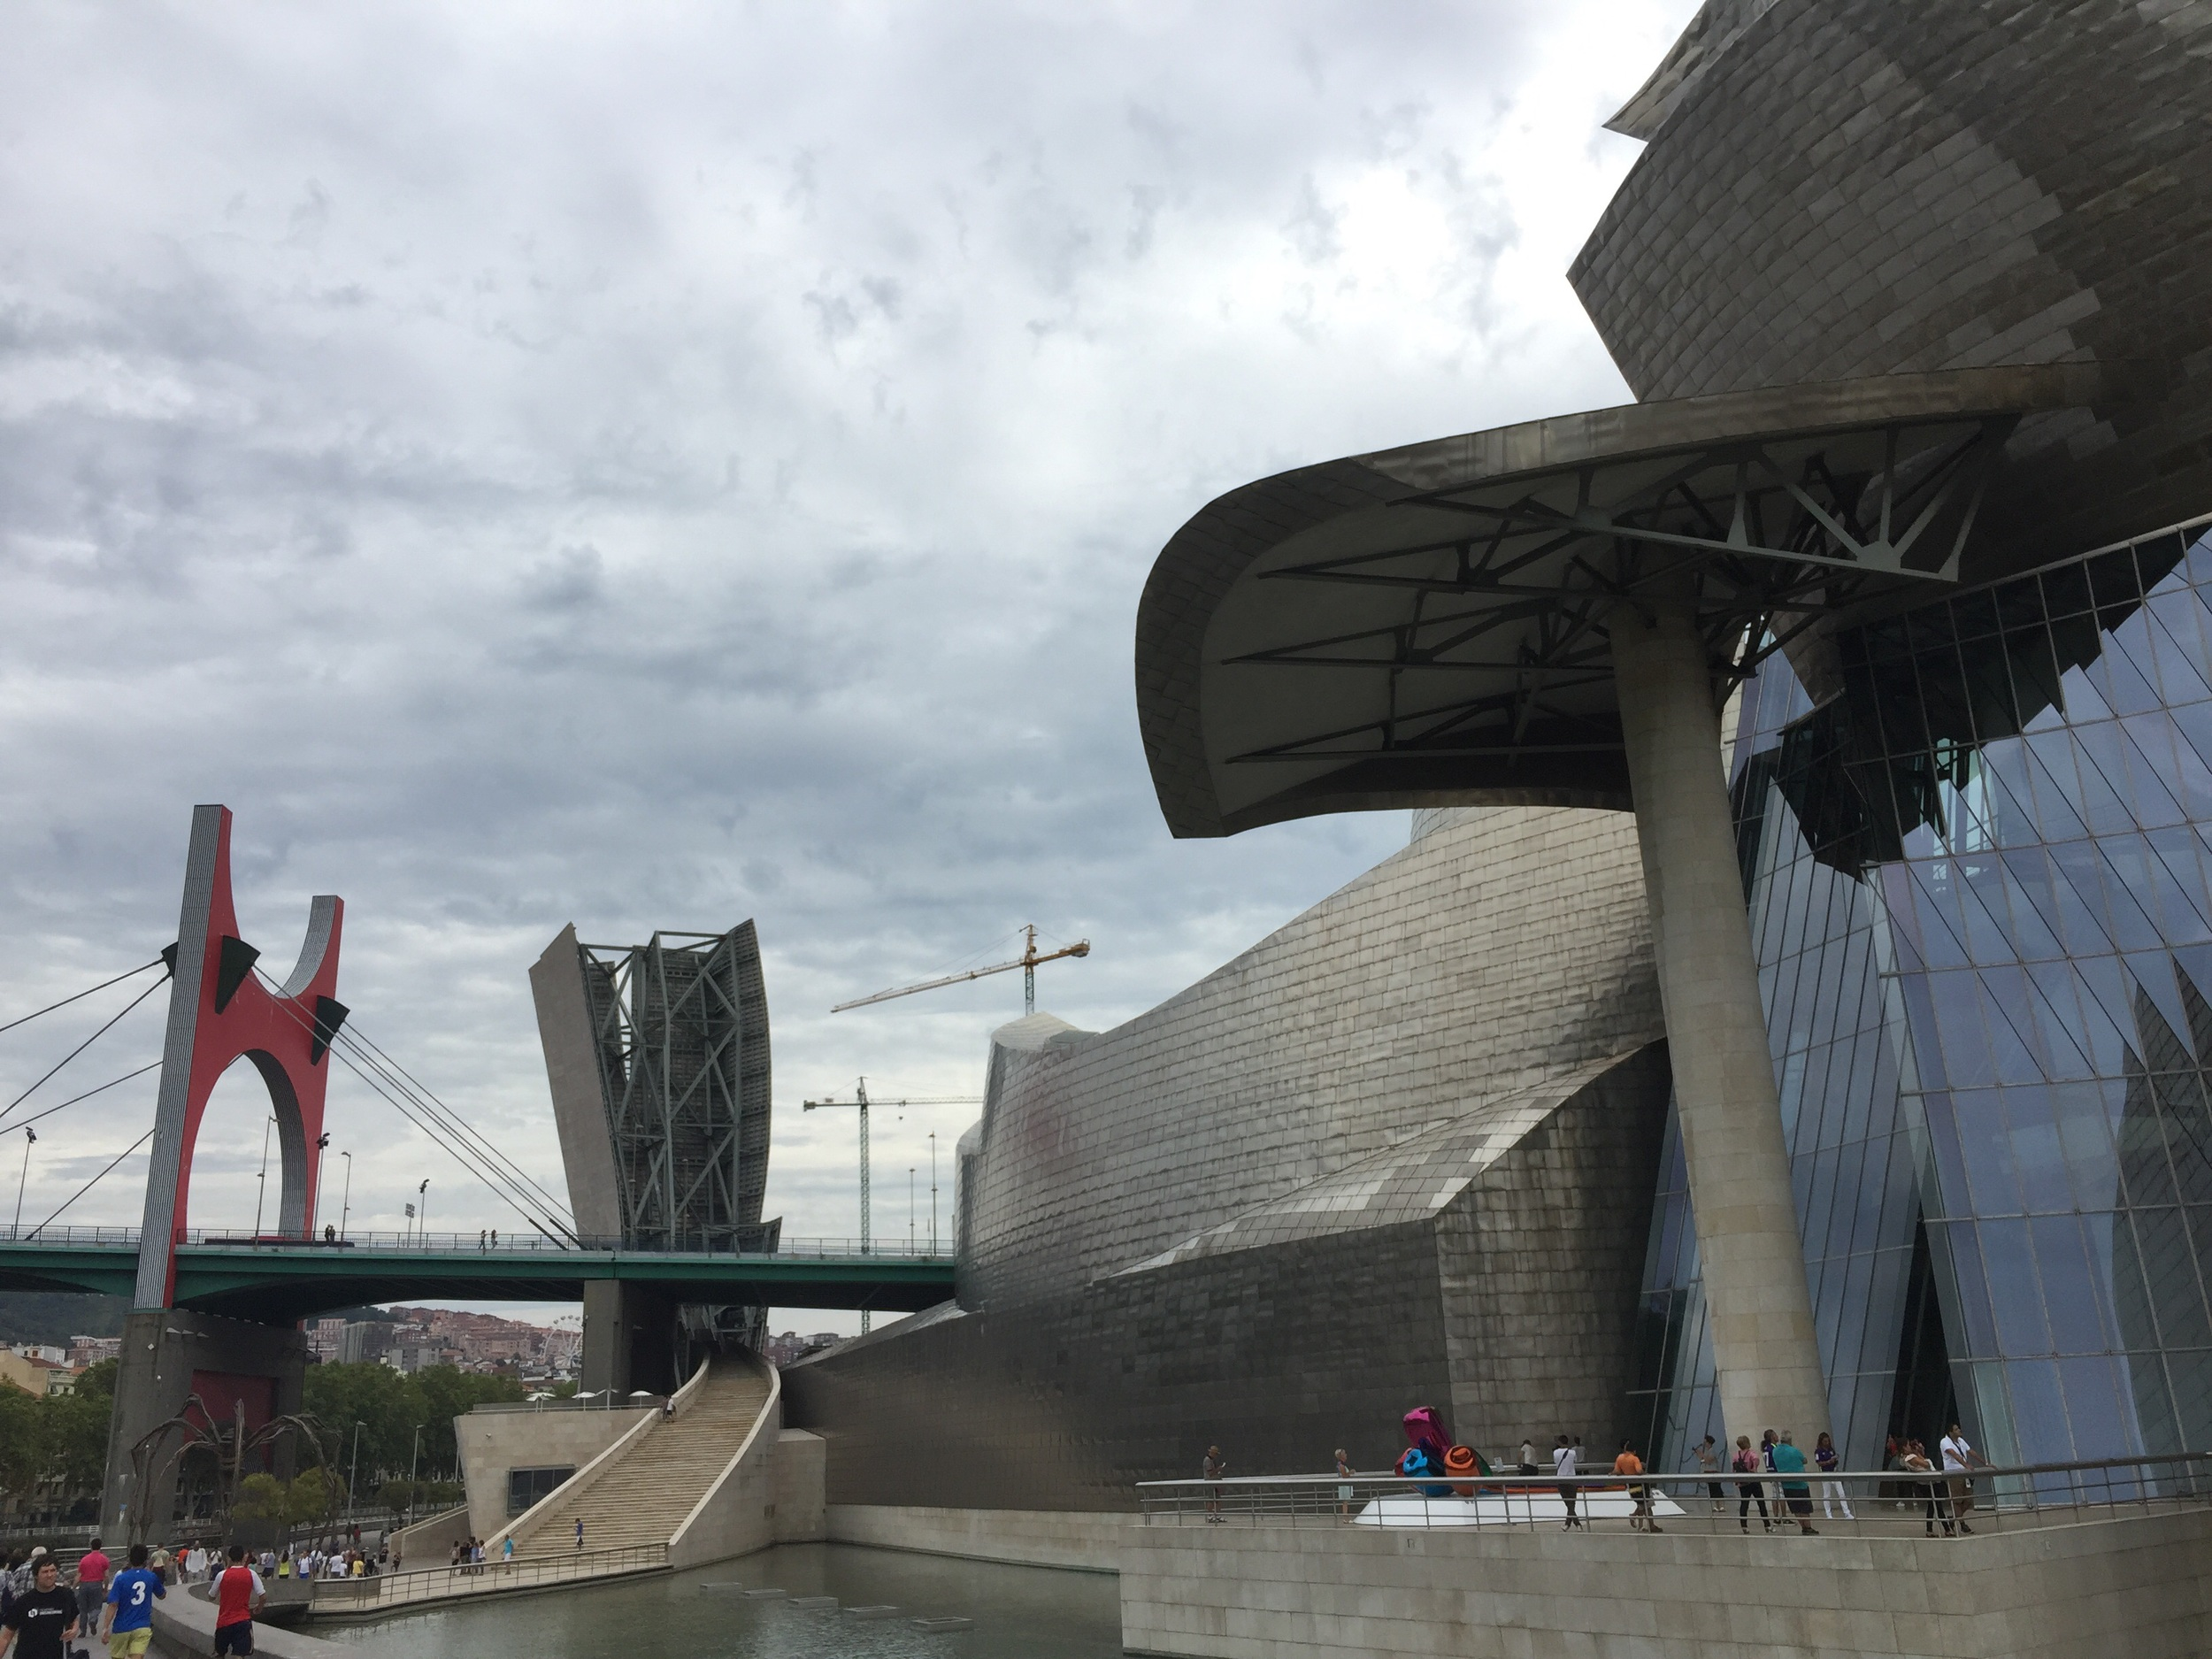 Louise Bourgeois'  Maman  spider placed outside the Guggenheim Bilbao (lower left corner)